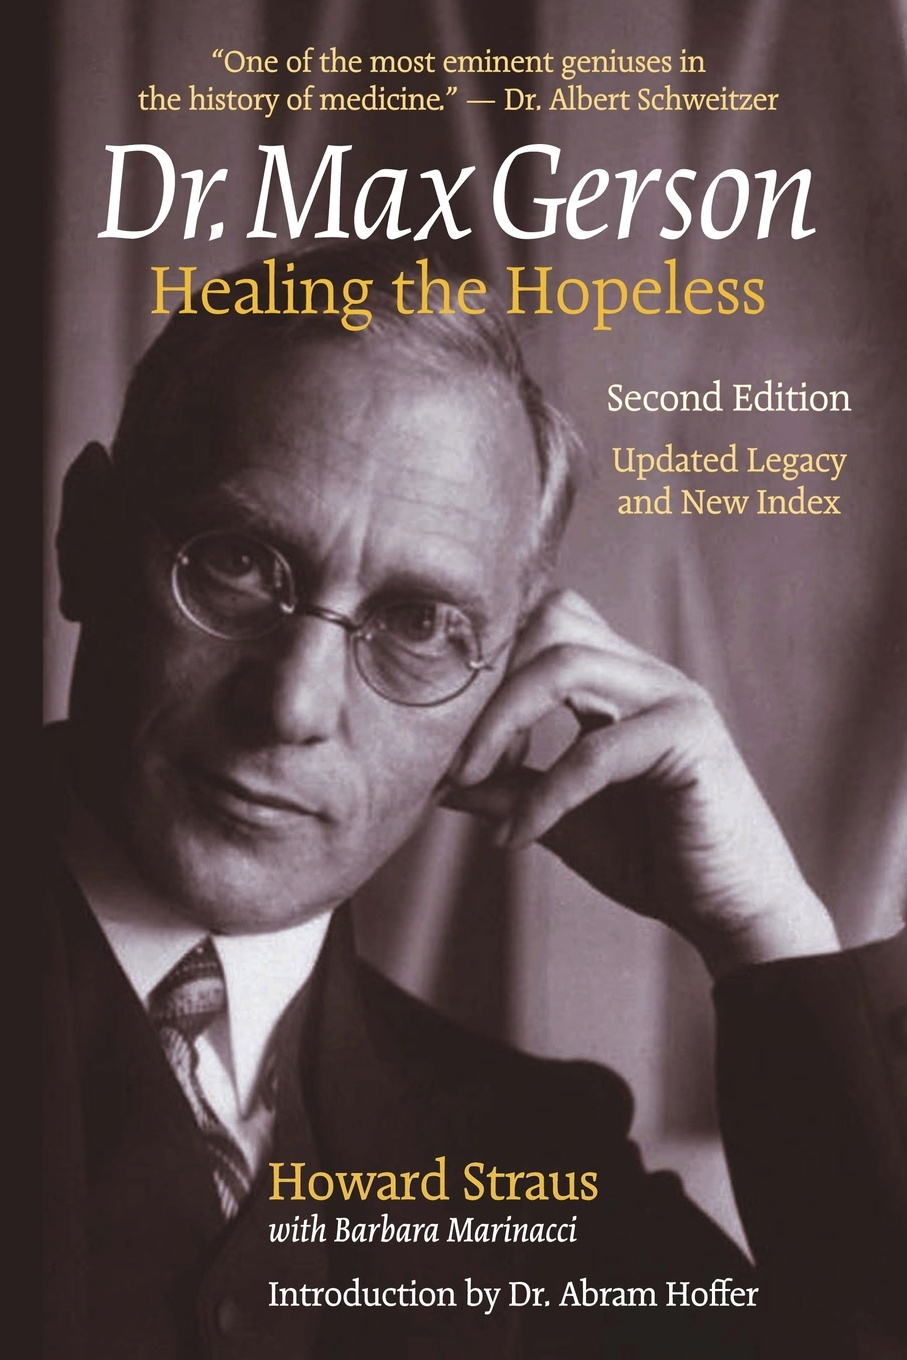 Howard Straus Dr. Max Gerson Healing the Hopeless